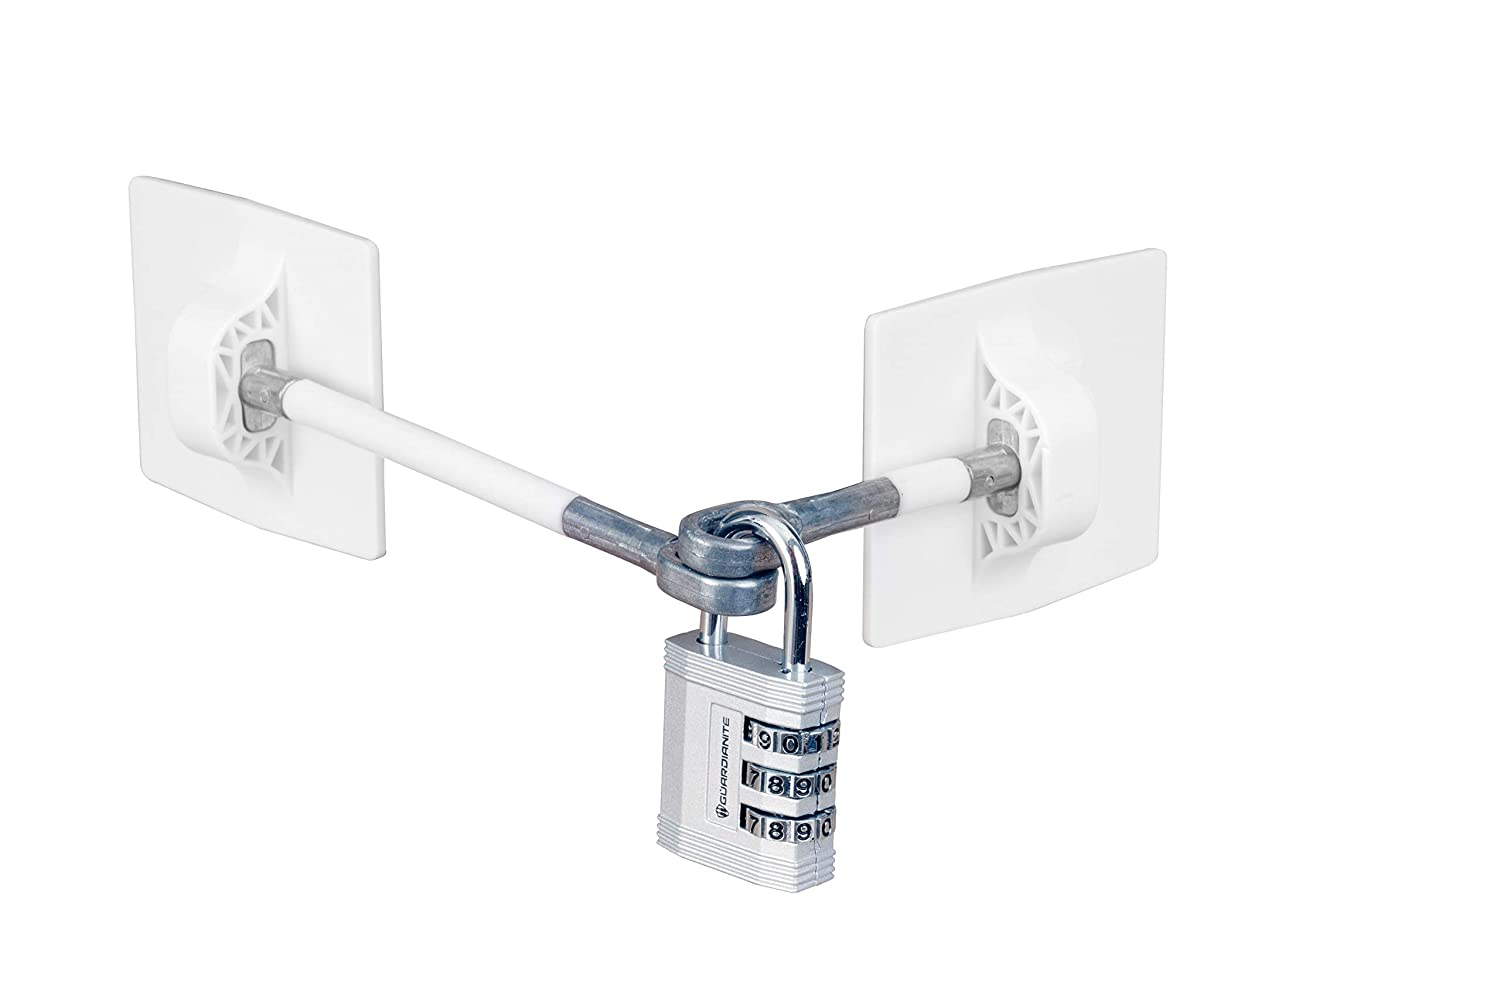 Refrigerator Door Lock with Combination Padlock - White